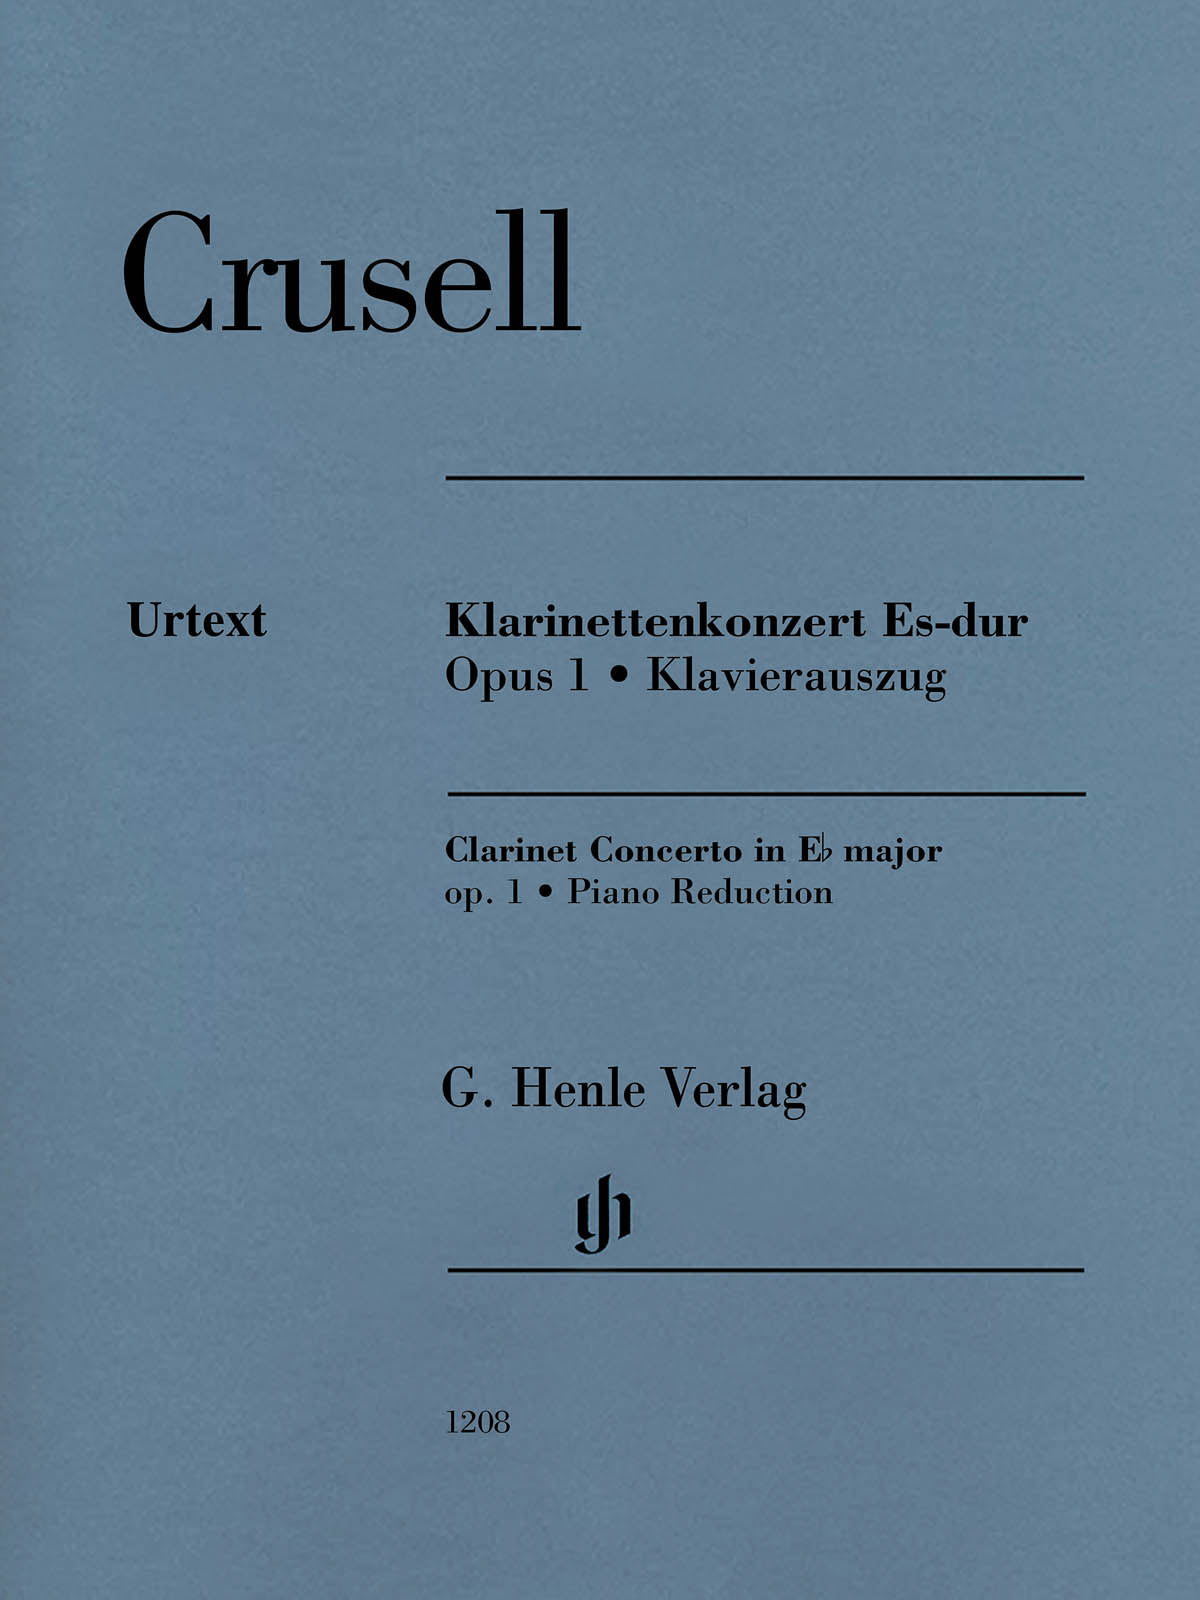 Crusell: Clarinet Concerto in E-flat Major, Op. 1